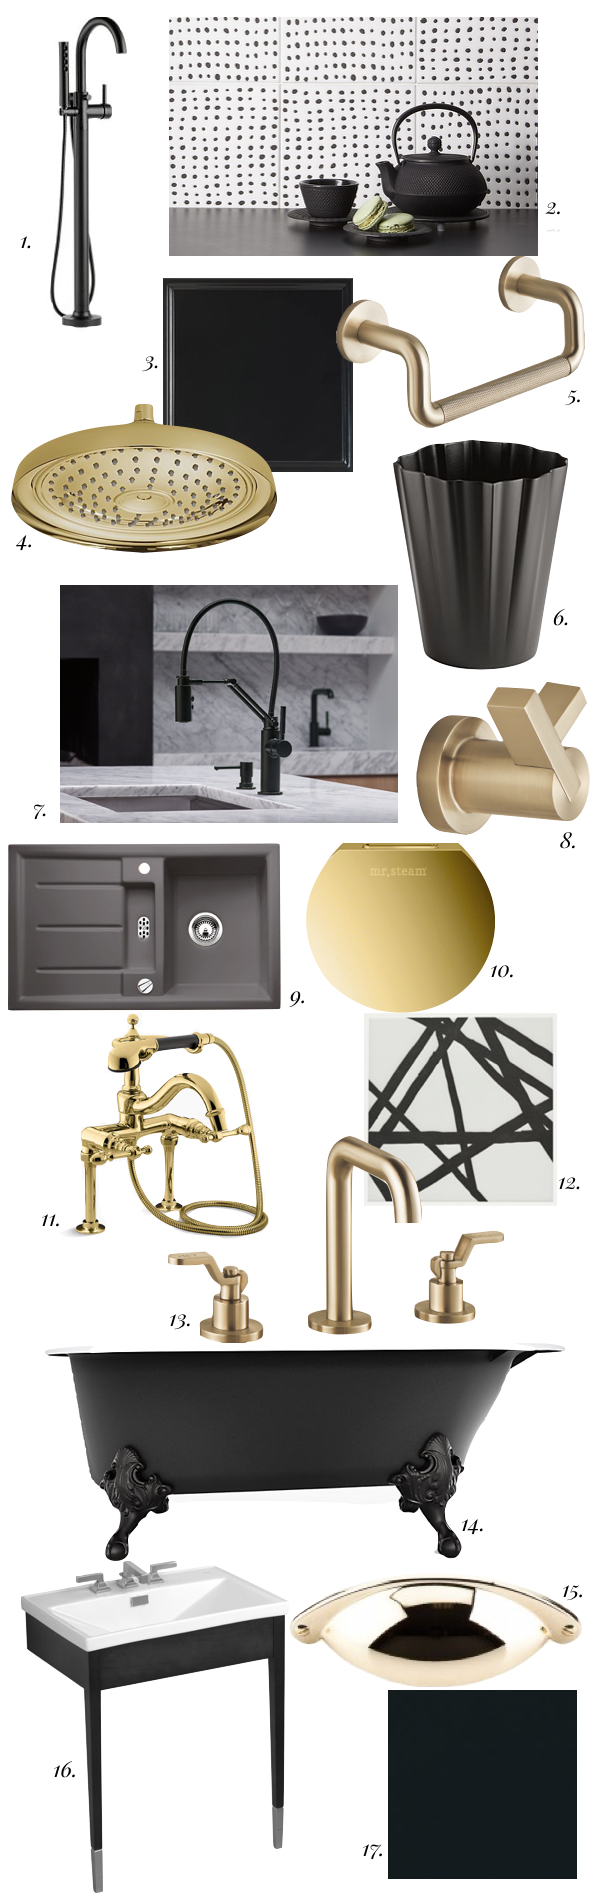 brass, matte black, kitchen trend, bath trend, brass in the kitchen, matte black in the kitchen, brass in the bathroom, matte black in the bathroom, brass hardware, matte black hardware, kelly wearstler tile, litze collection, blanco, brizo, kohler, brass shower head, matte black bath tub, matte black sink, mr steam, brass bathroom, gold bathroom,